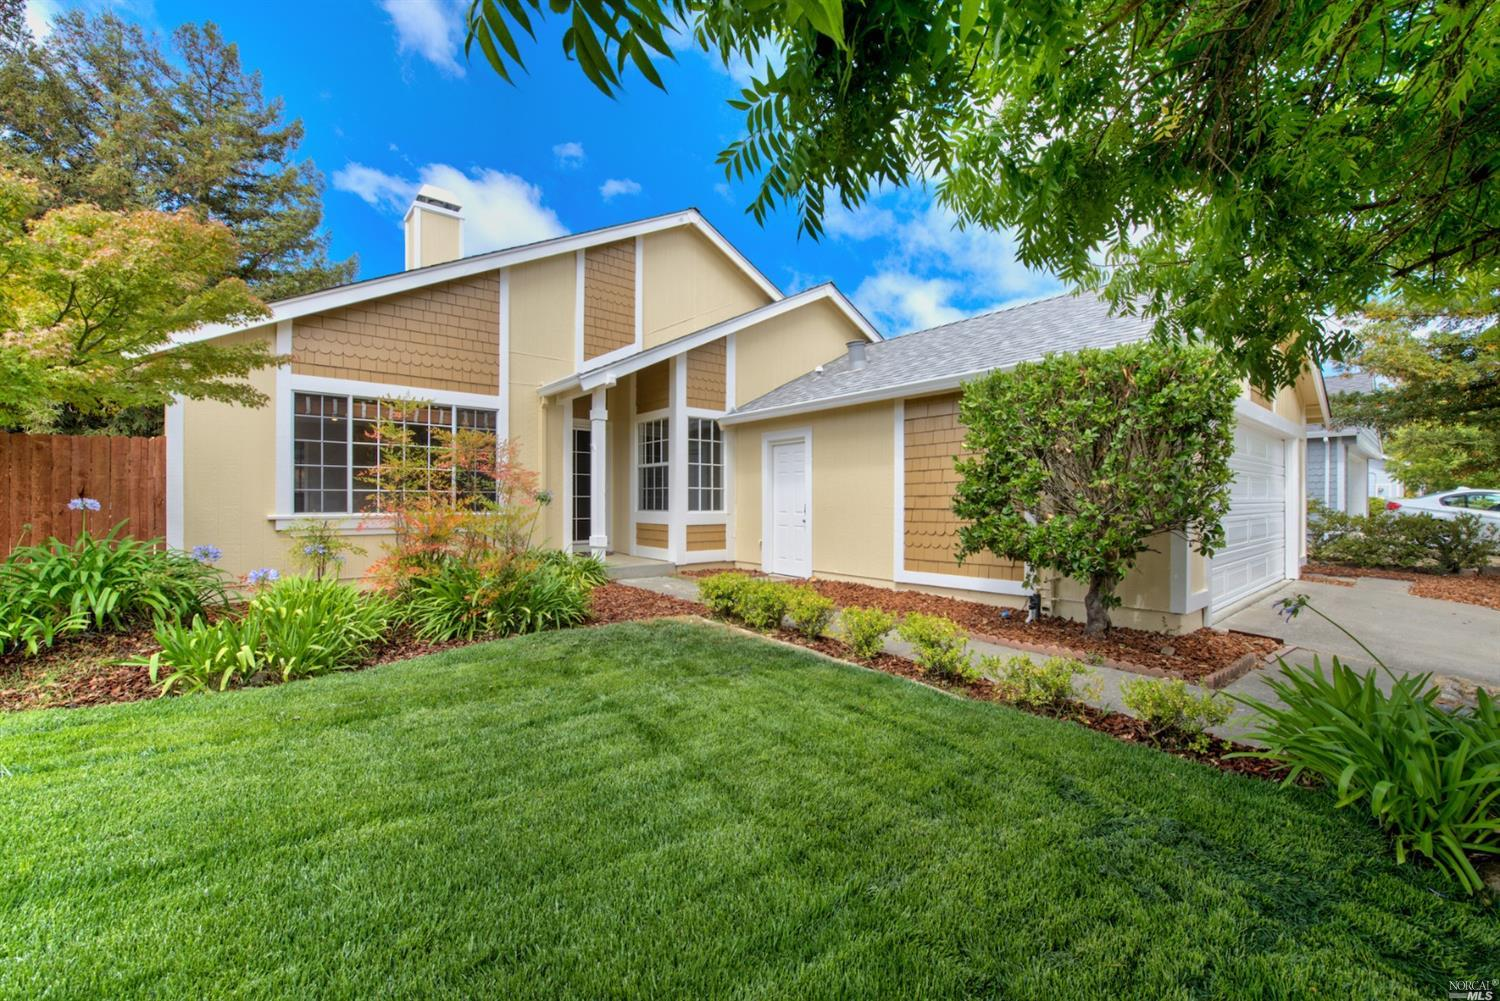 This 4-bedroom 2-bathroom beauty has been lovingly maintained and generously improved. A new roof, n